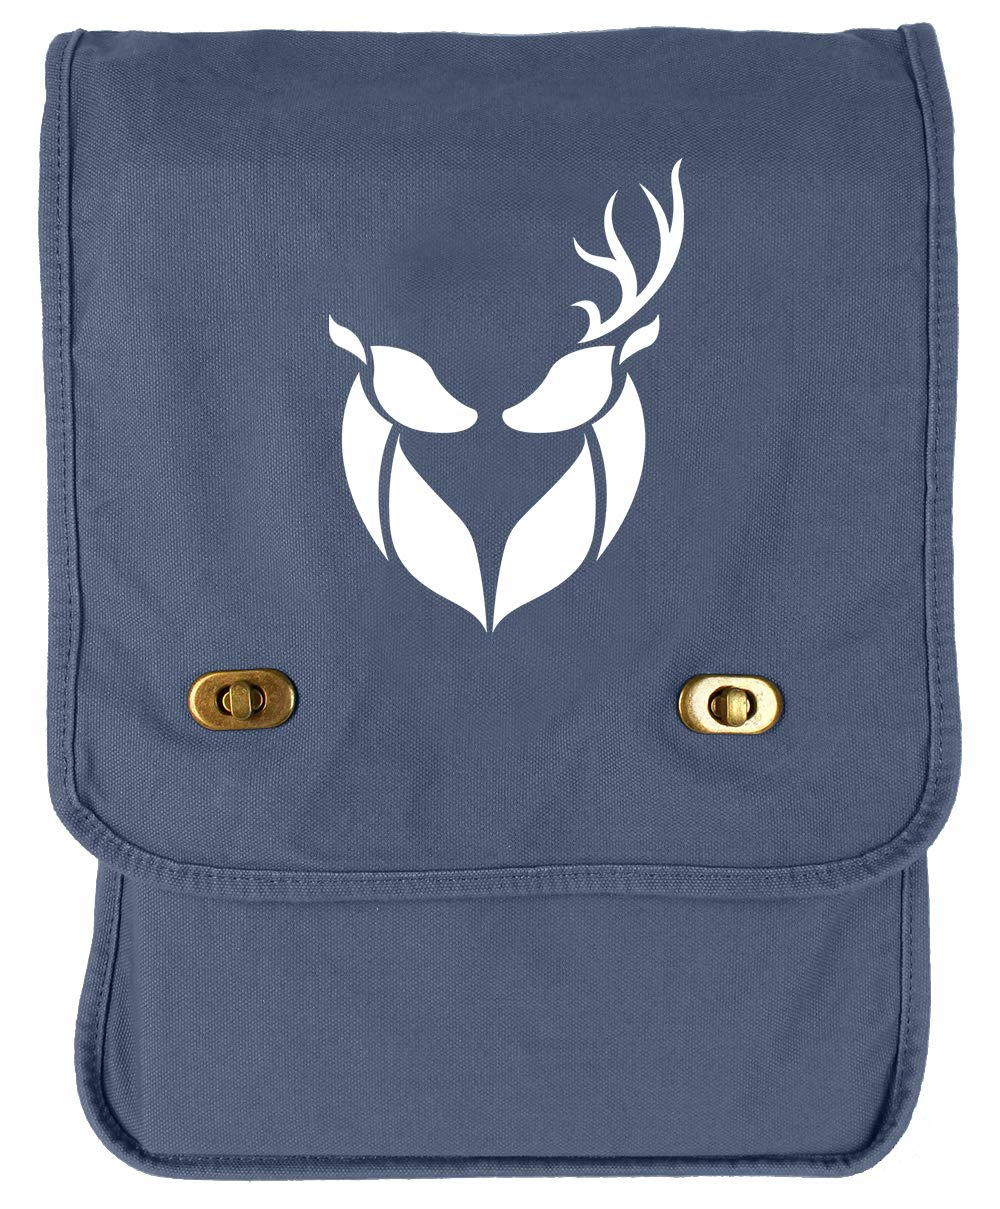 Tenacitee Buck and Doe Flamingo Raw Edge Canvas Messenger Bag